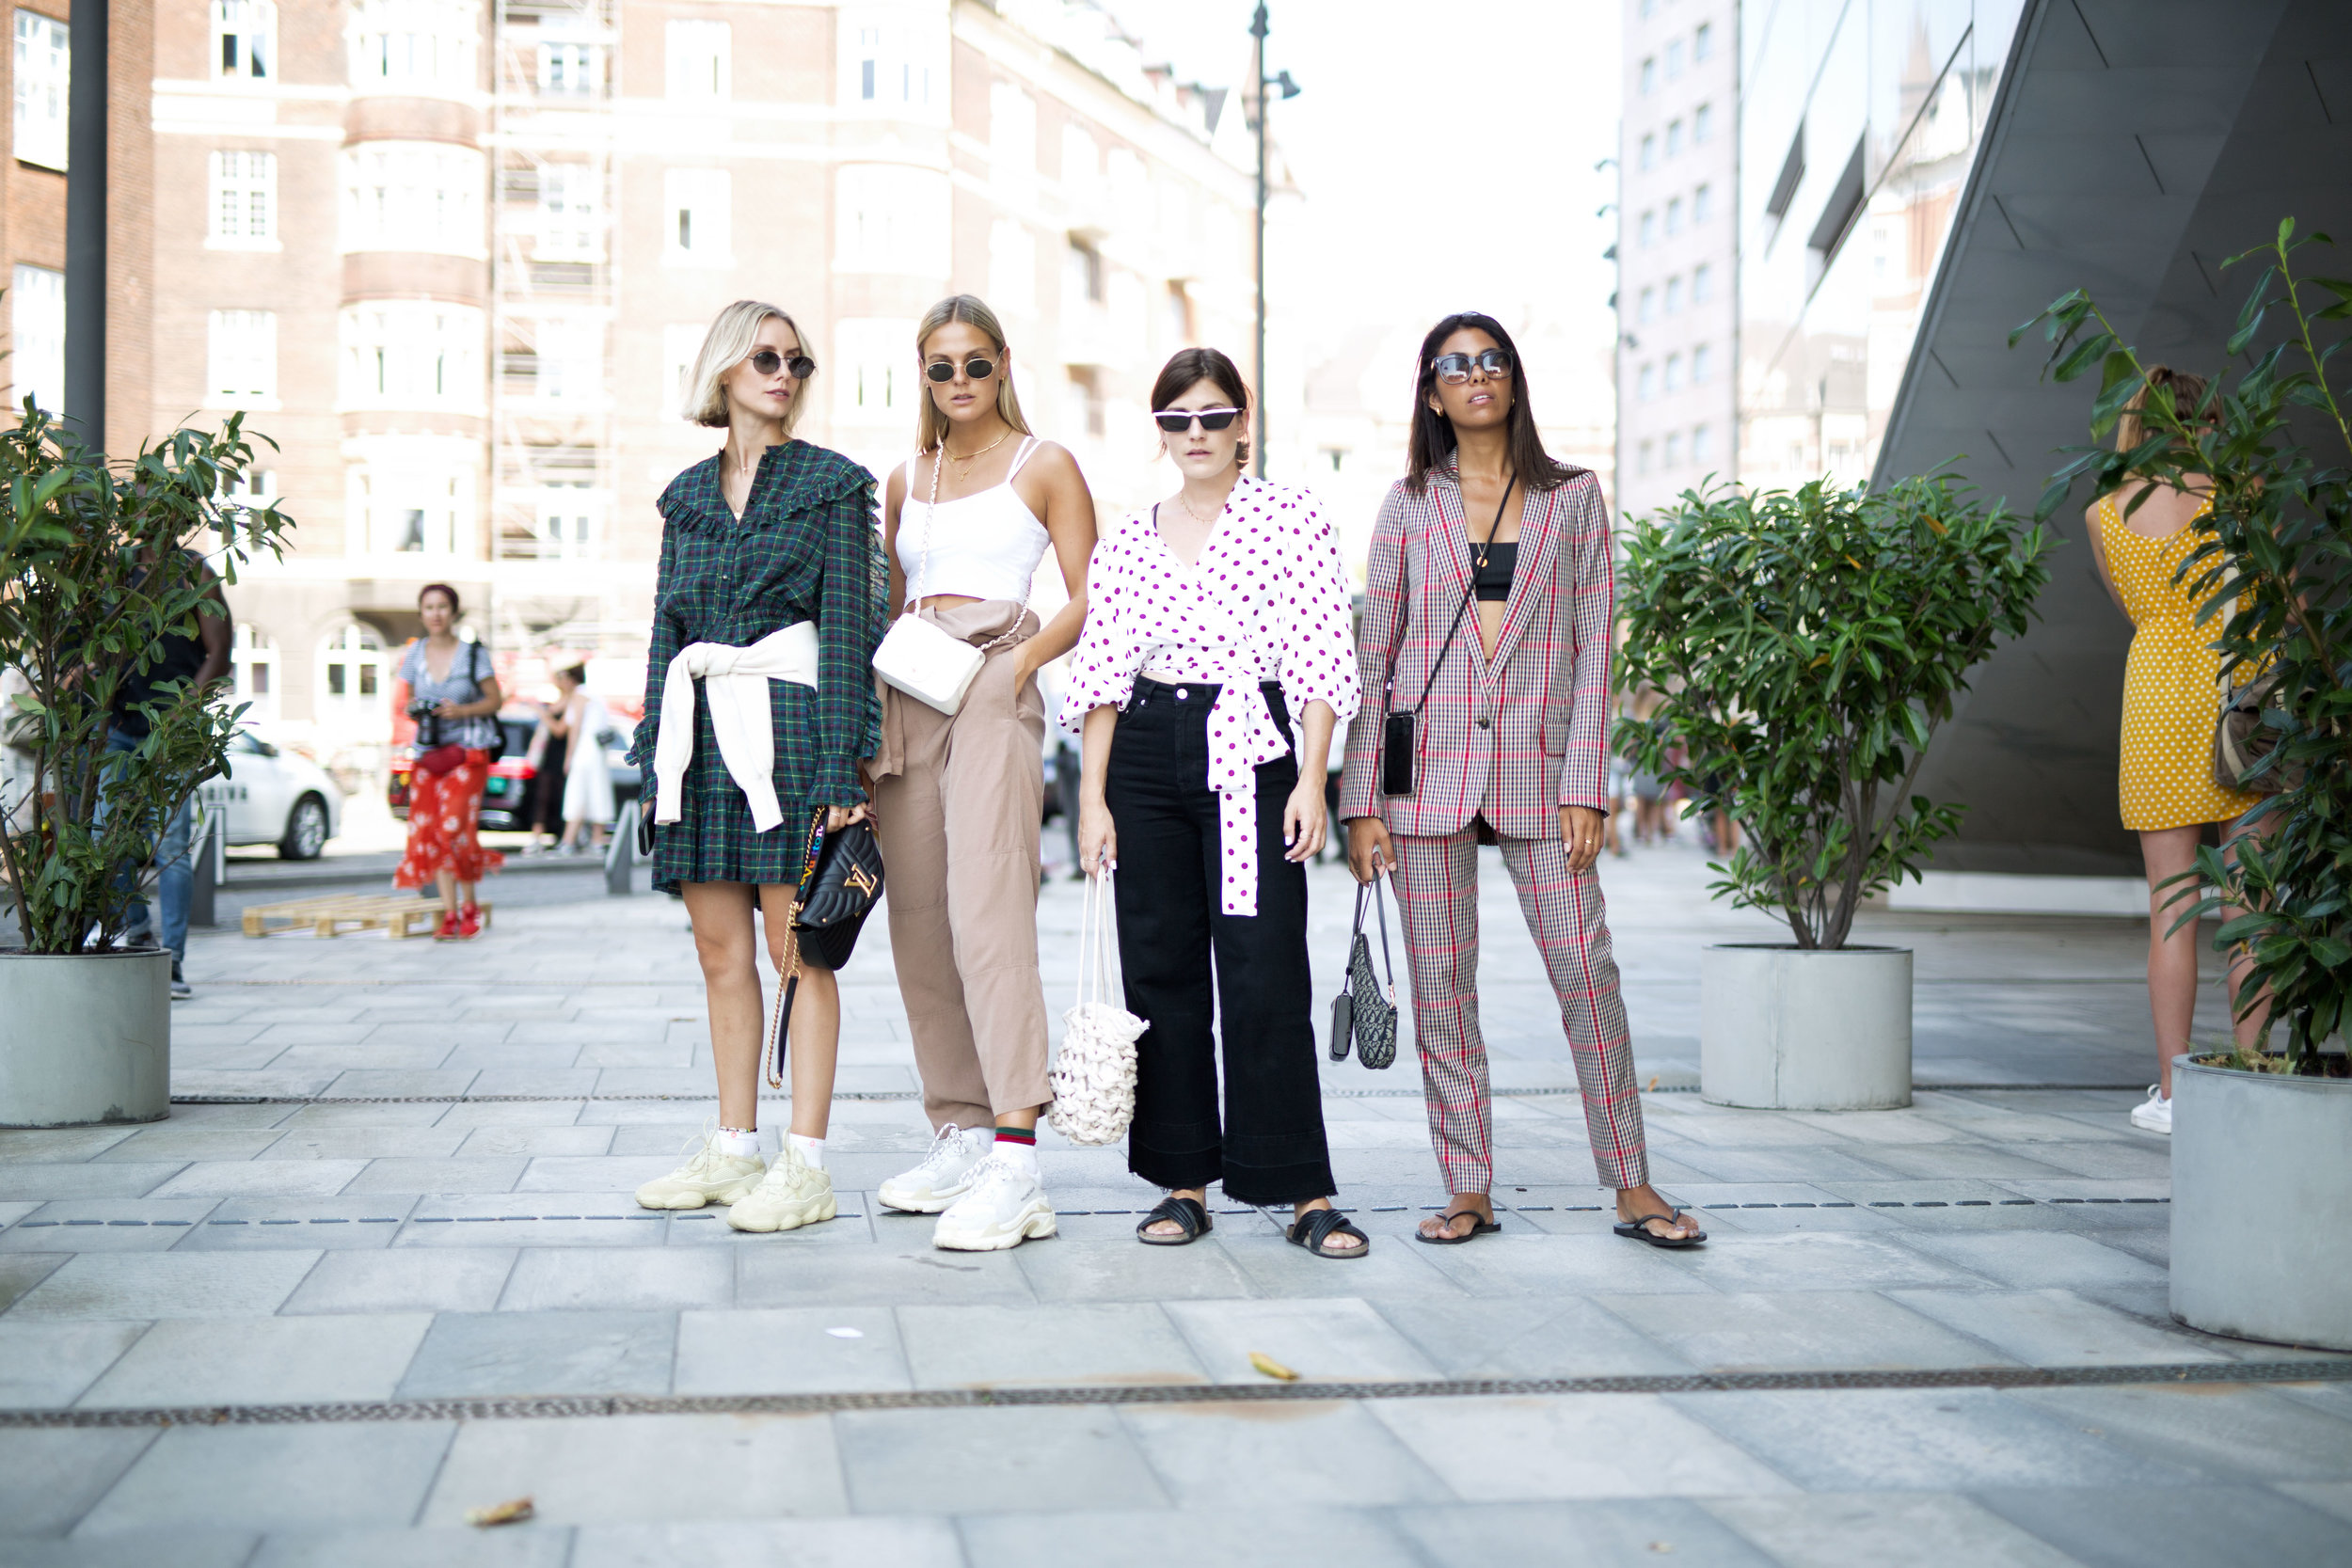 TheStreetland_Copenhagen_Fashion_Week_SS19_70.jpg